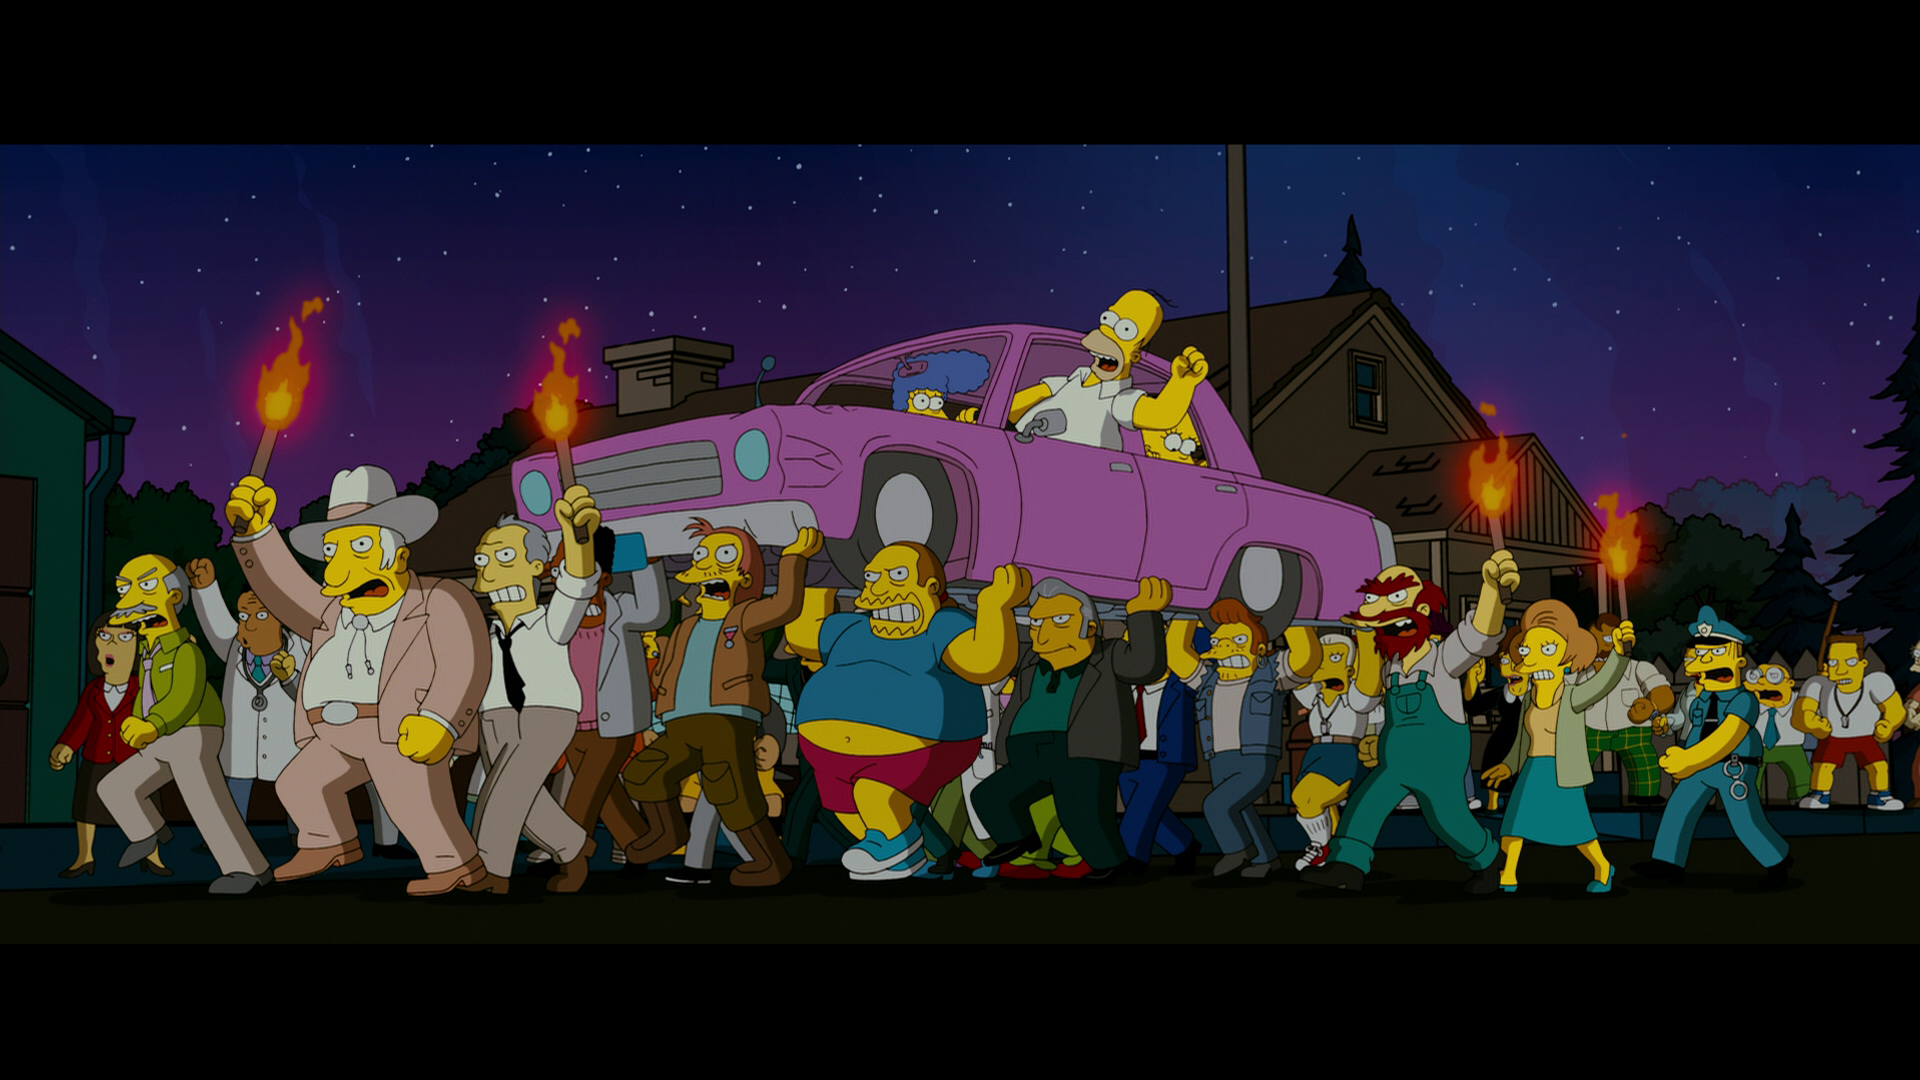 The Simpsons Movie Hd Wallpaper Background Image 1920x1080 Id 499280 Wallpaper Abyss